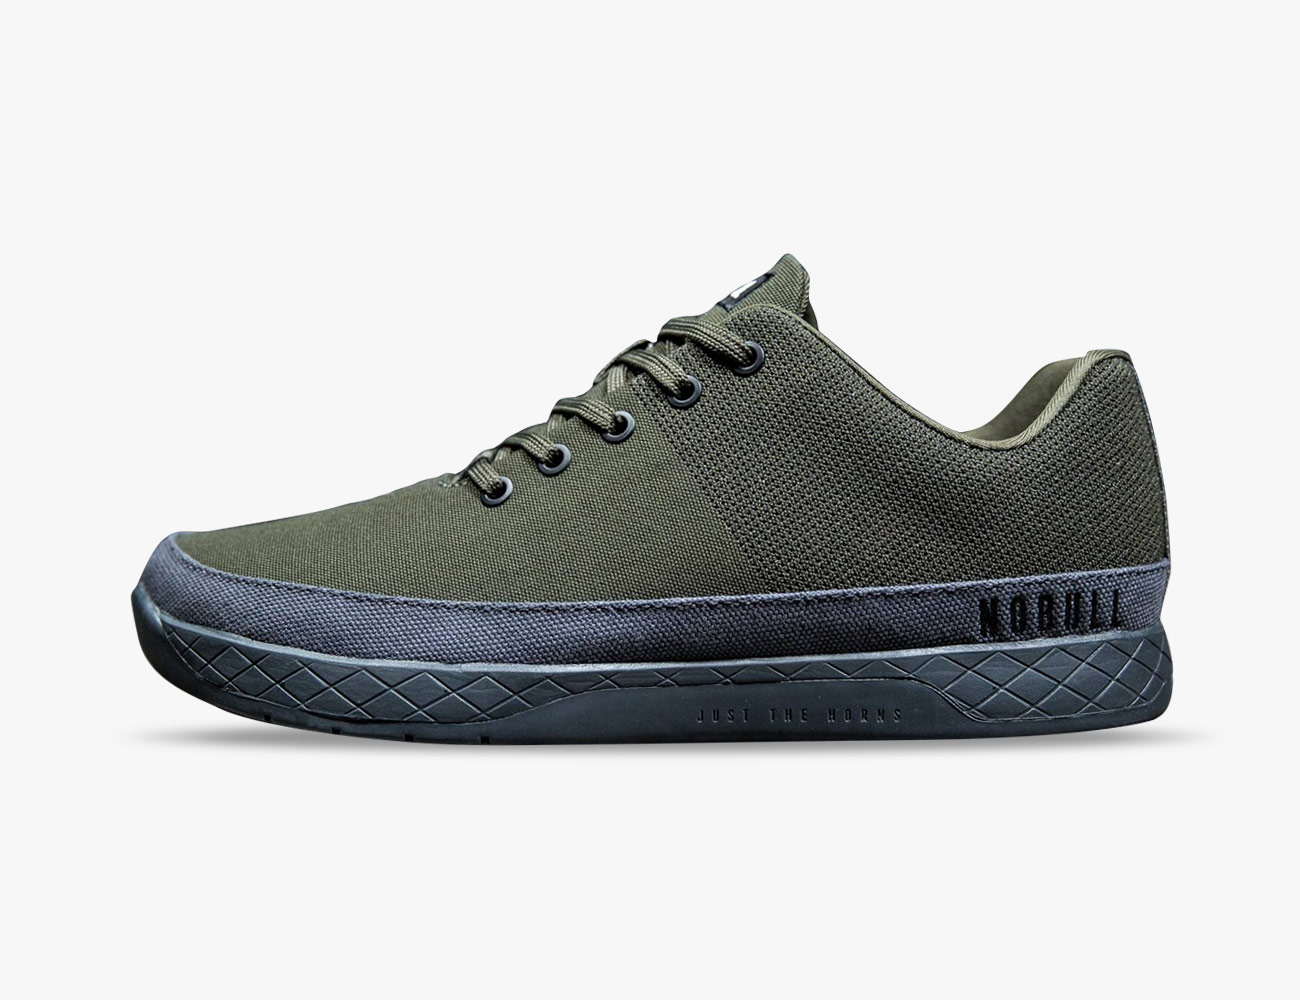 f1bd07c409b The 8 Best Gym Shoes for Every Type of Workout